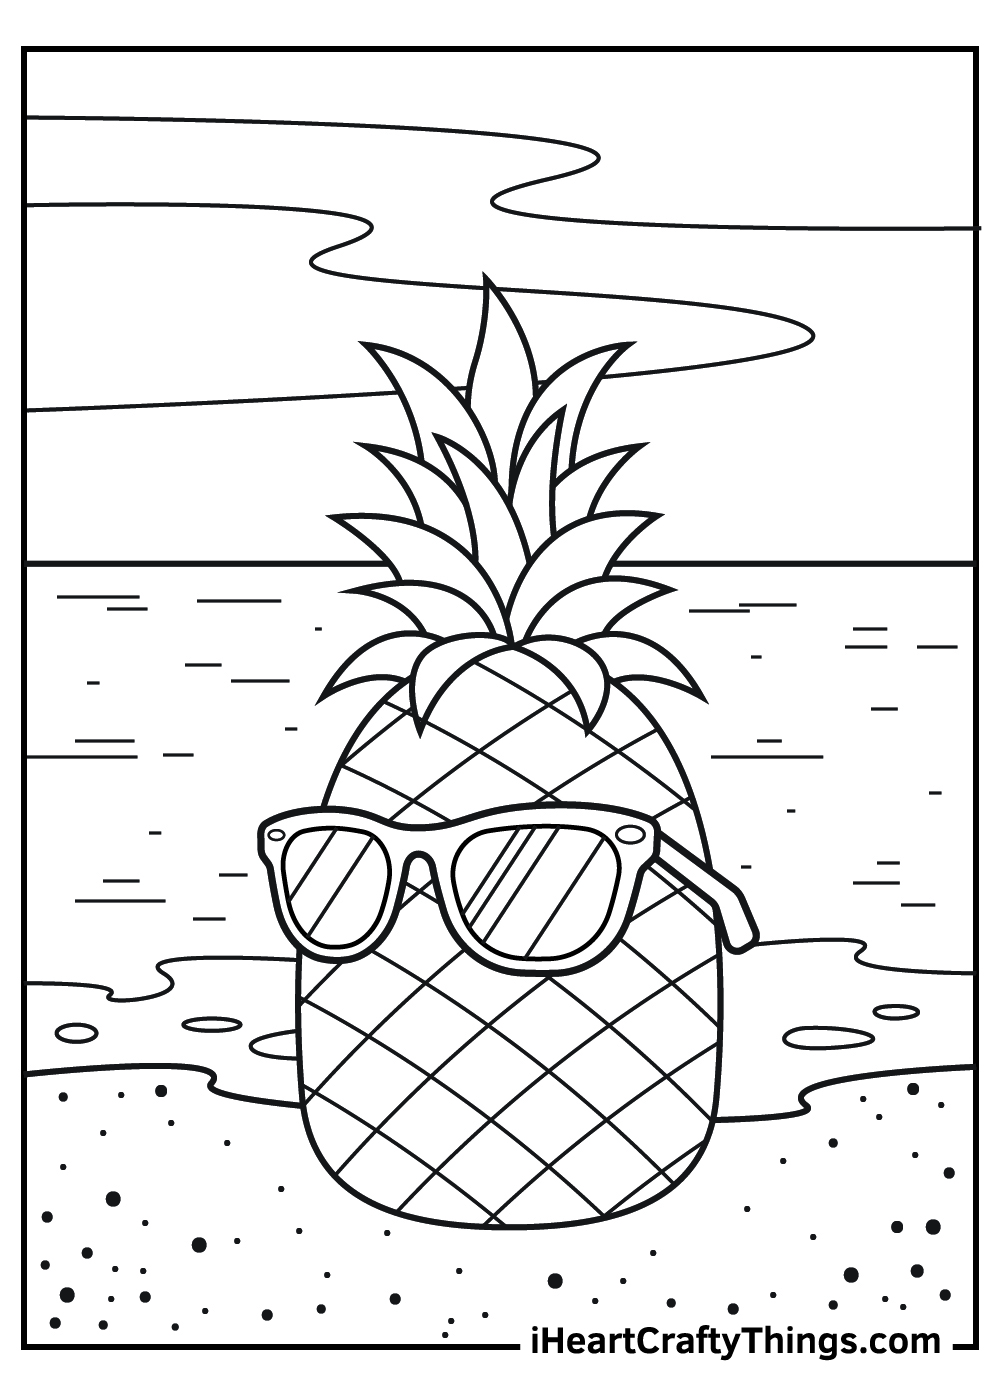 cute pineapple coloring pages free printable